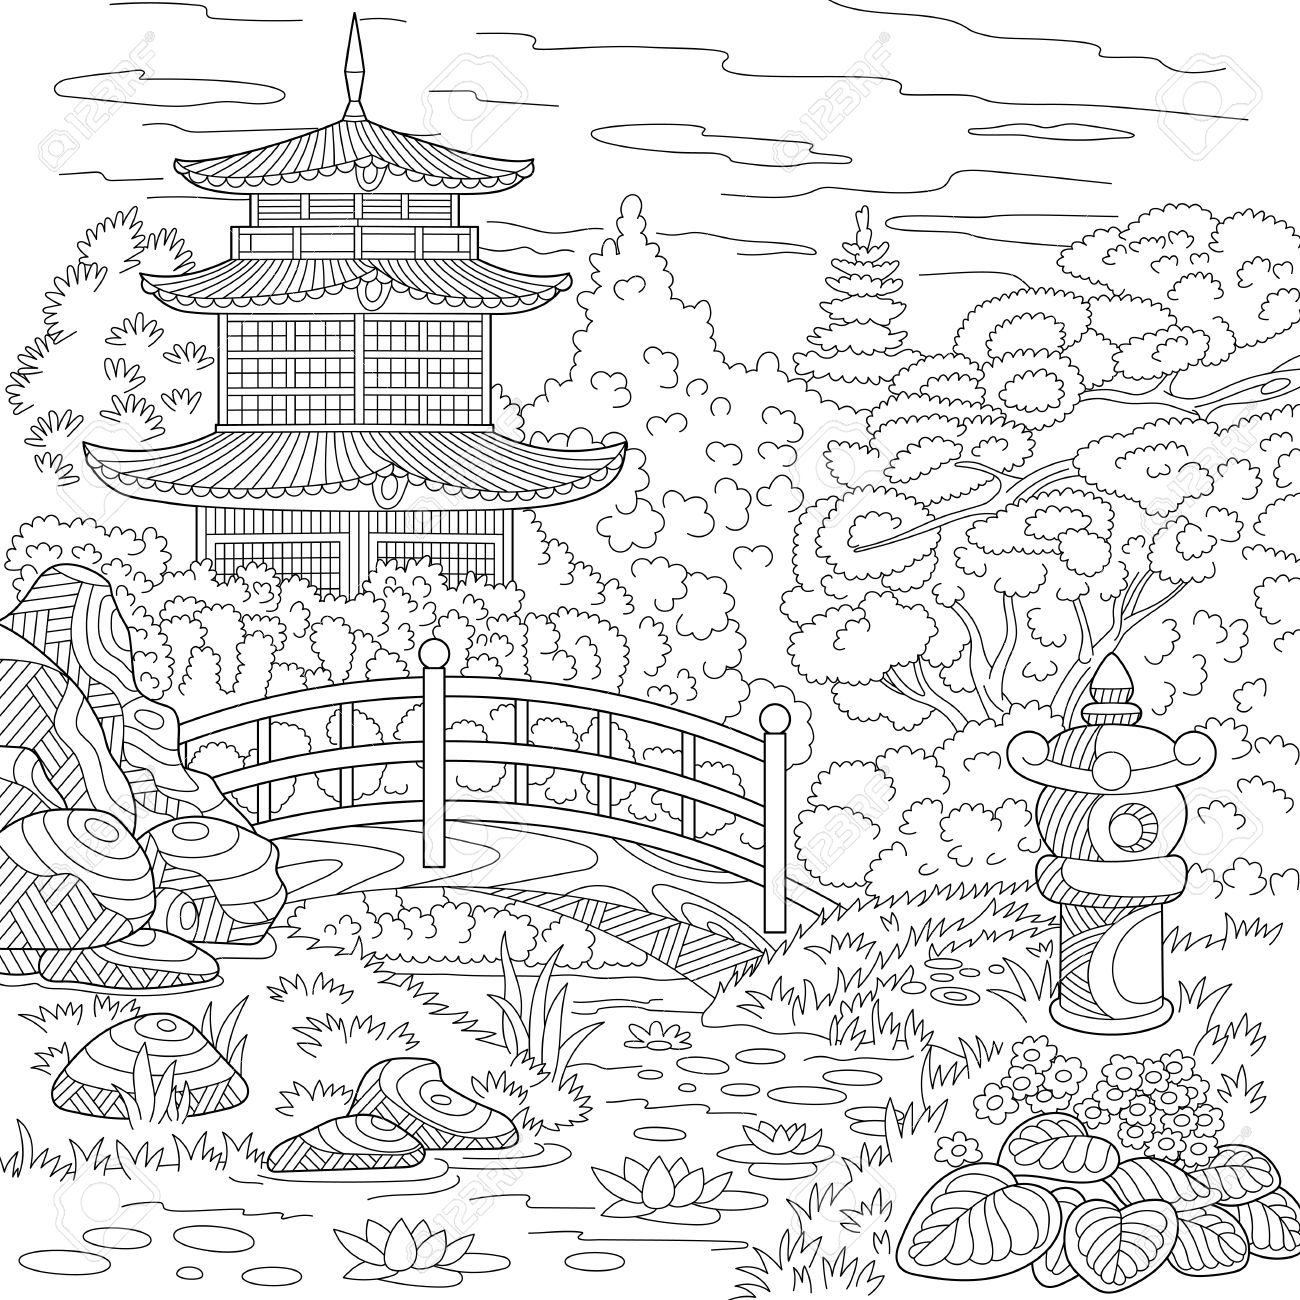 Chinese Pagoda Drawing